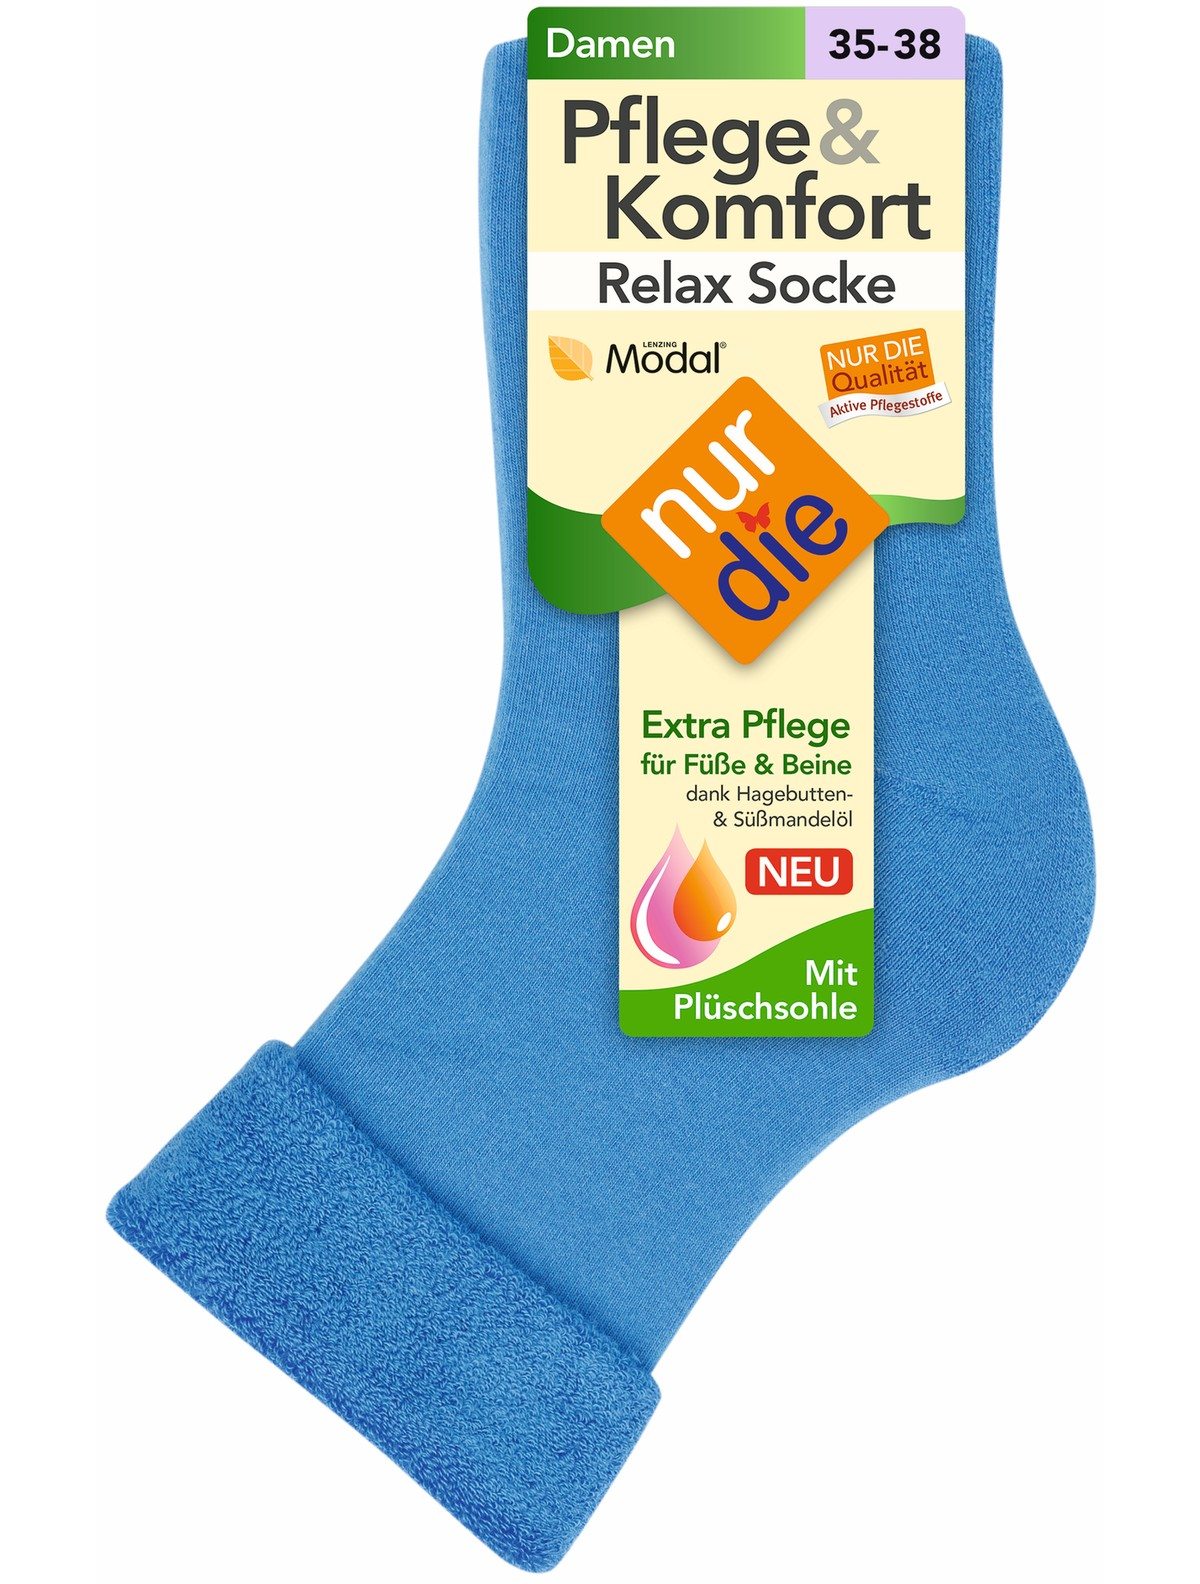 Eastbay Cheap Price Womens Damen Pflege & Komfort Relax Socks Nur Die Professional Cheap Online Outlet Latest Best Place Cheap Online Store For Sale cHDNlO1pnw